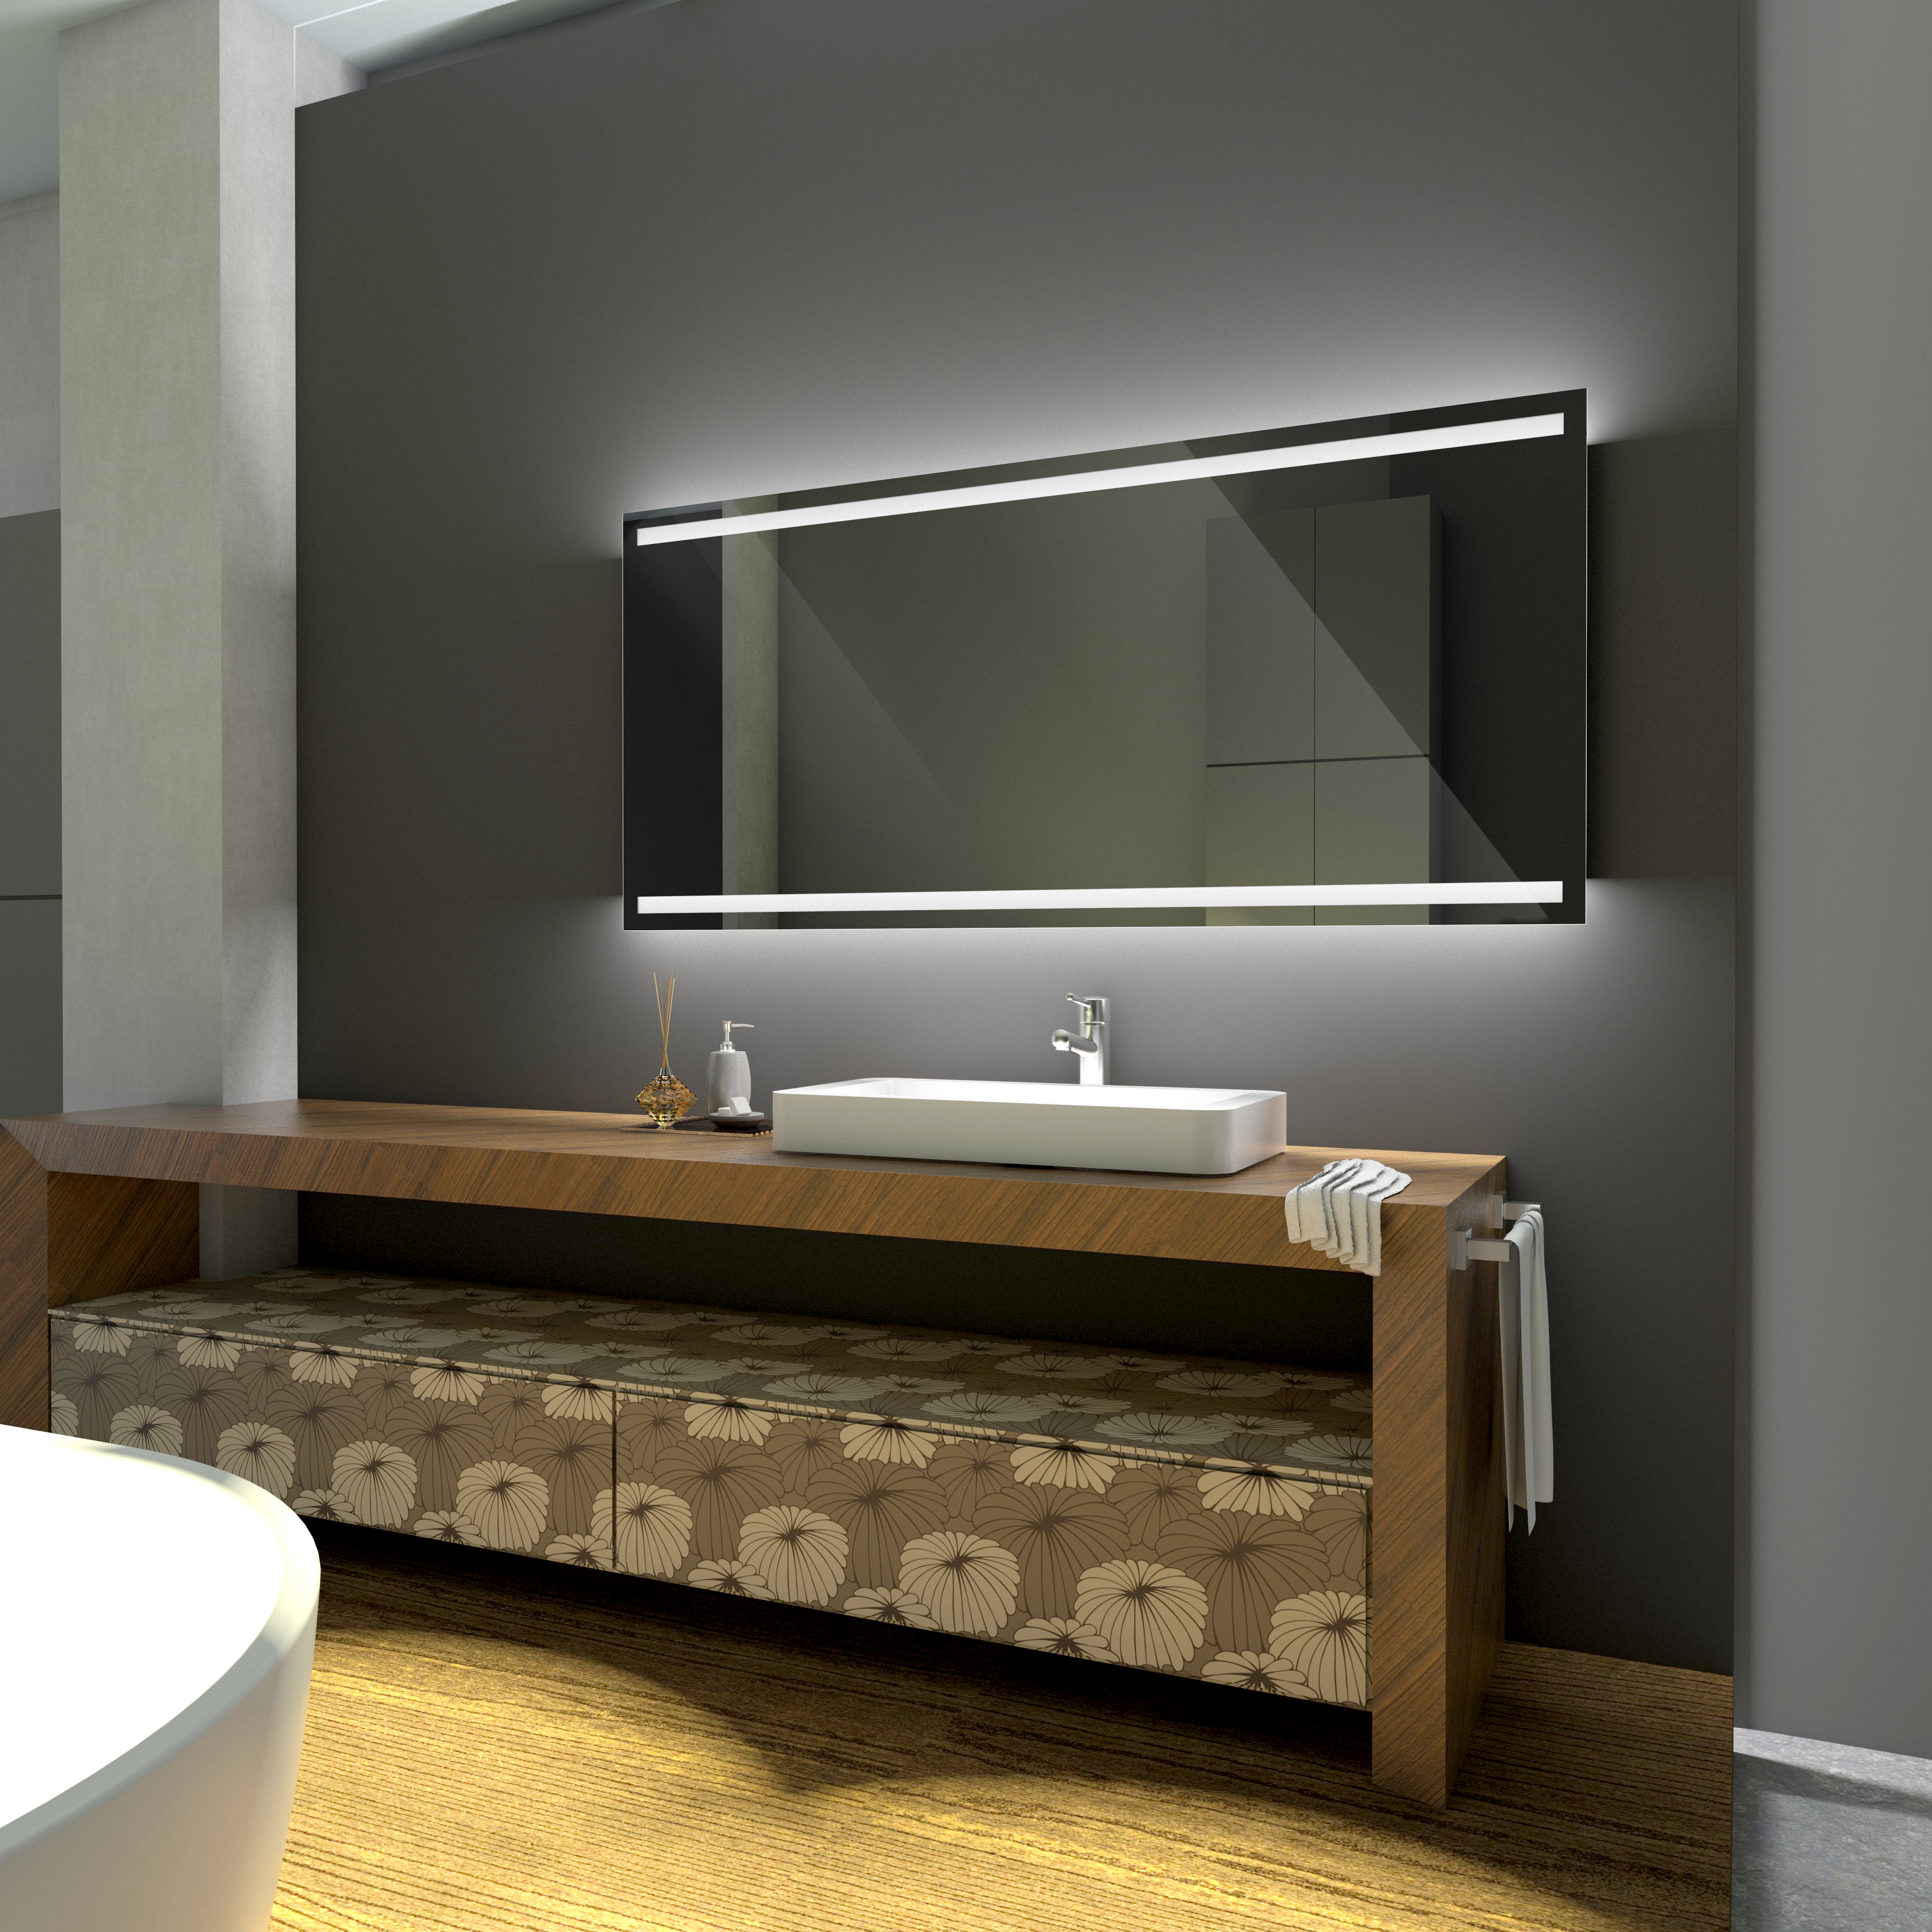 badspiegel mit led spiegel mit beleuchtung wandspiegel nach ma denver promo ebay. Black Bedroom Furniture Sets. Home Design Ideas